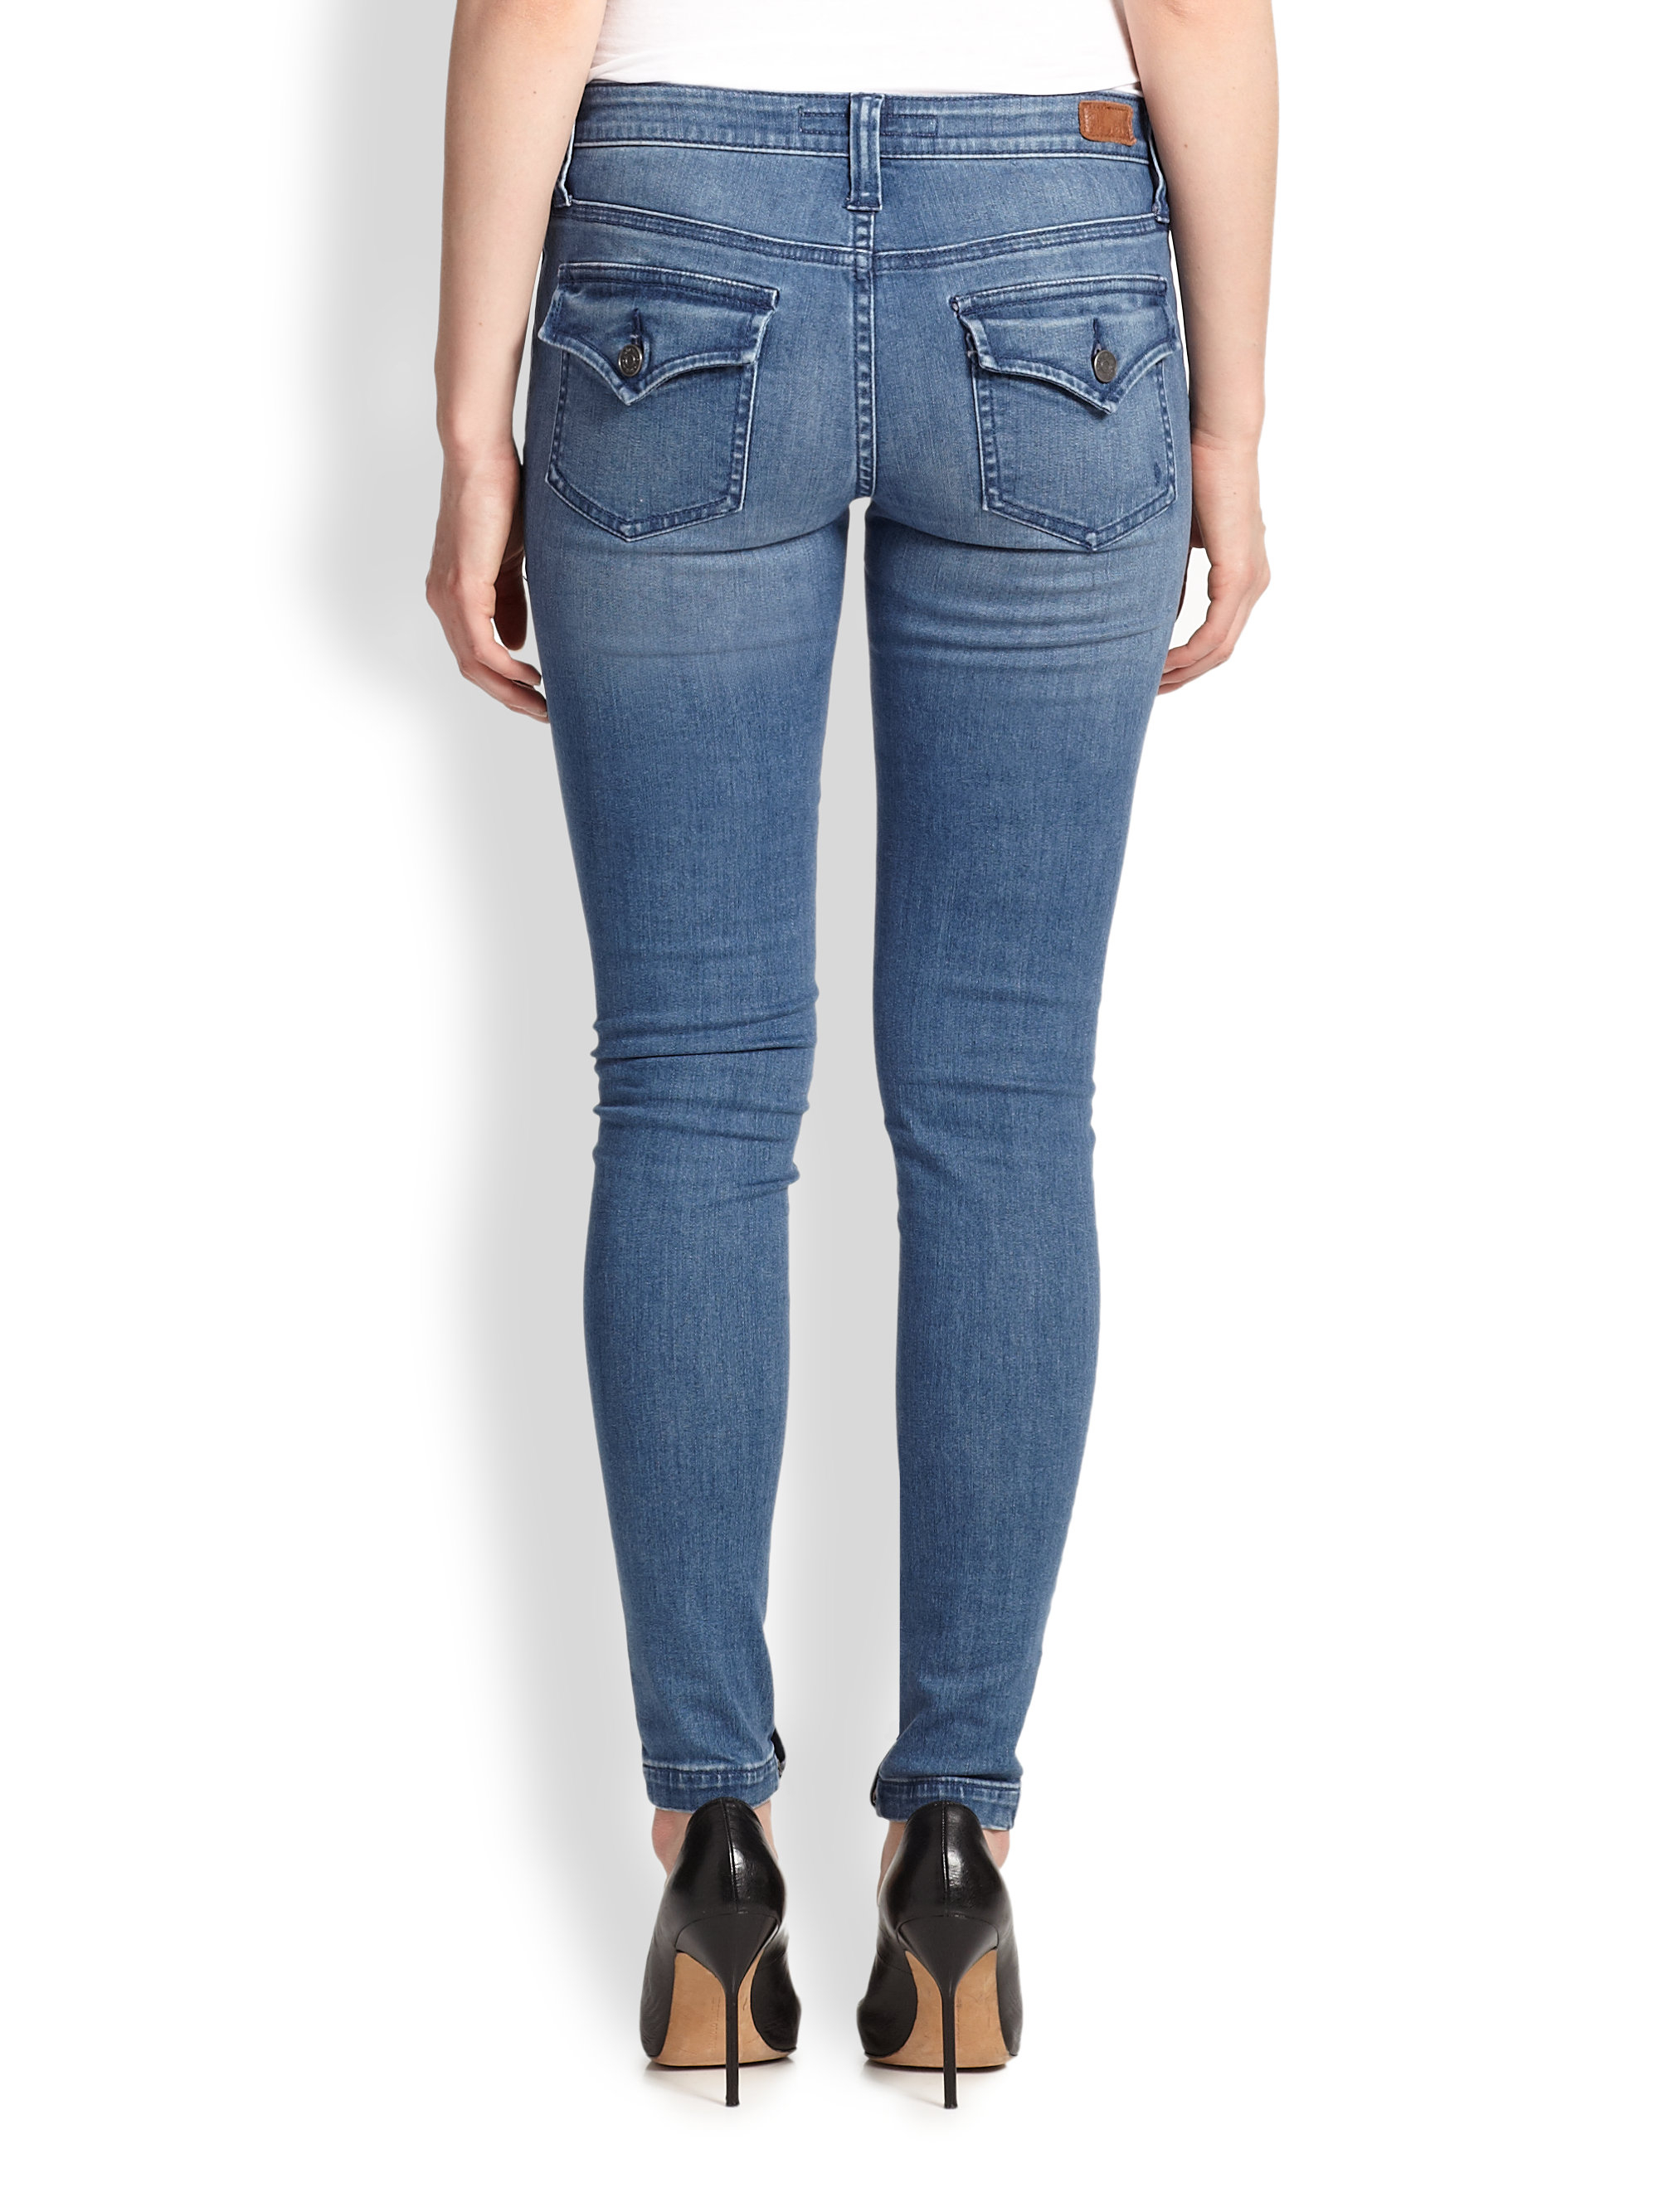 Joie So Real Skinny Cargo Jeans in Blue | Lyst